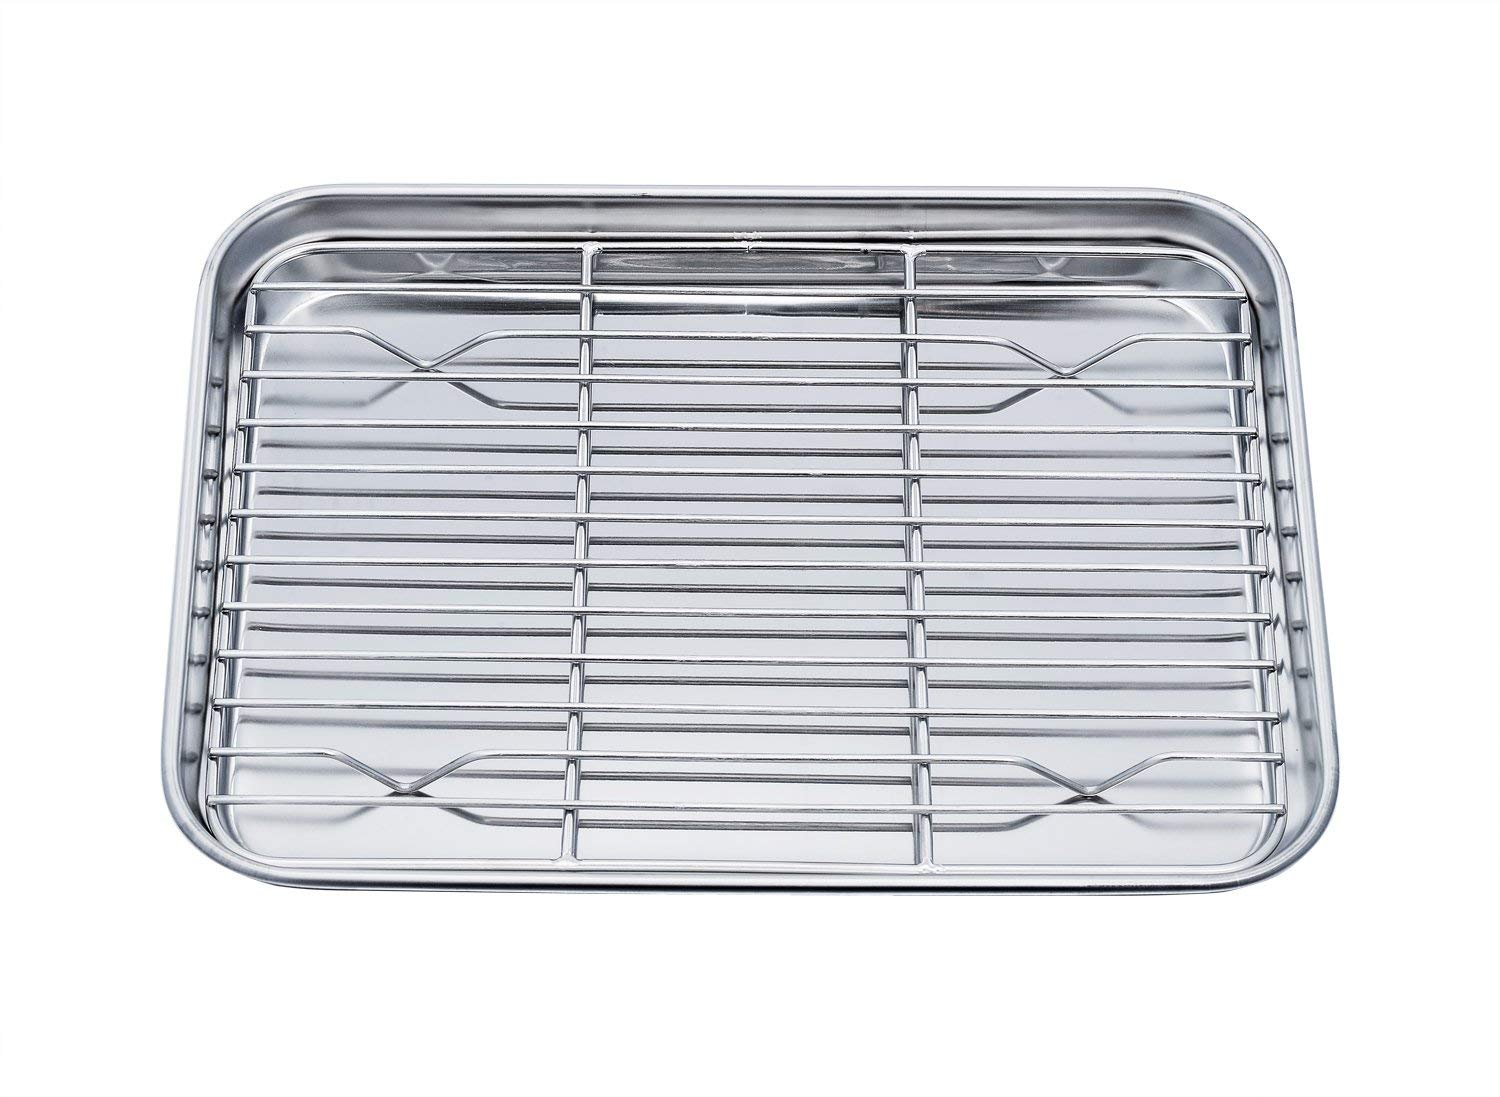 TeamFar Toaster Oven Pan Tray with Cooling Rack, Stainless Steel Toaster Ovenware broiler Pan, Compact 8''x10''x1'', Healthy & Non Toxic, Rust Free & Easy Clean - Dishwasher Safe (Renewed)